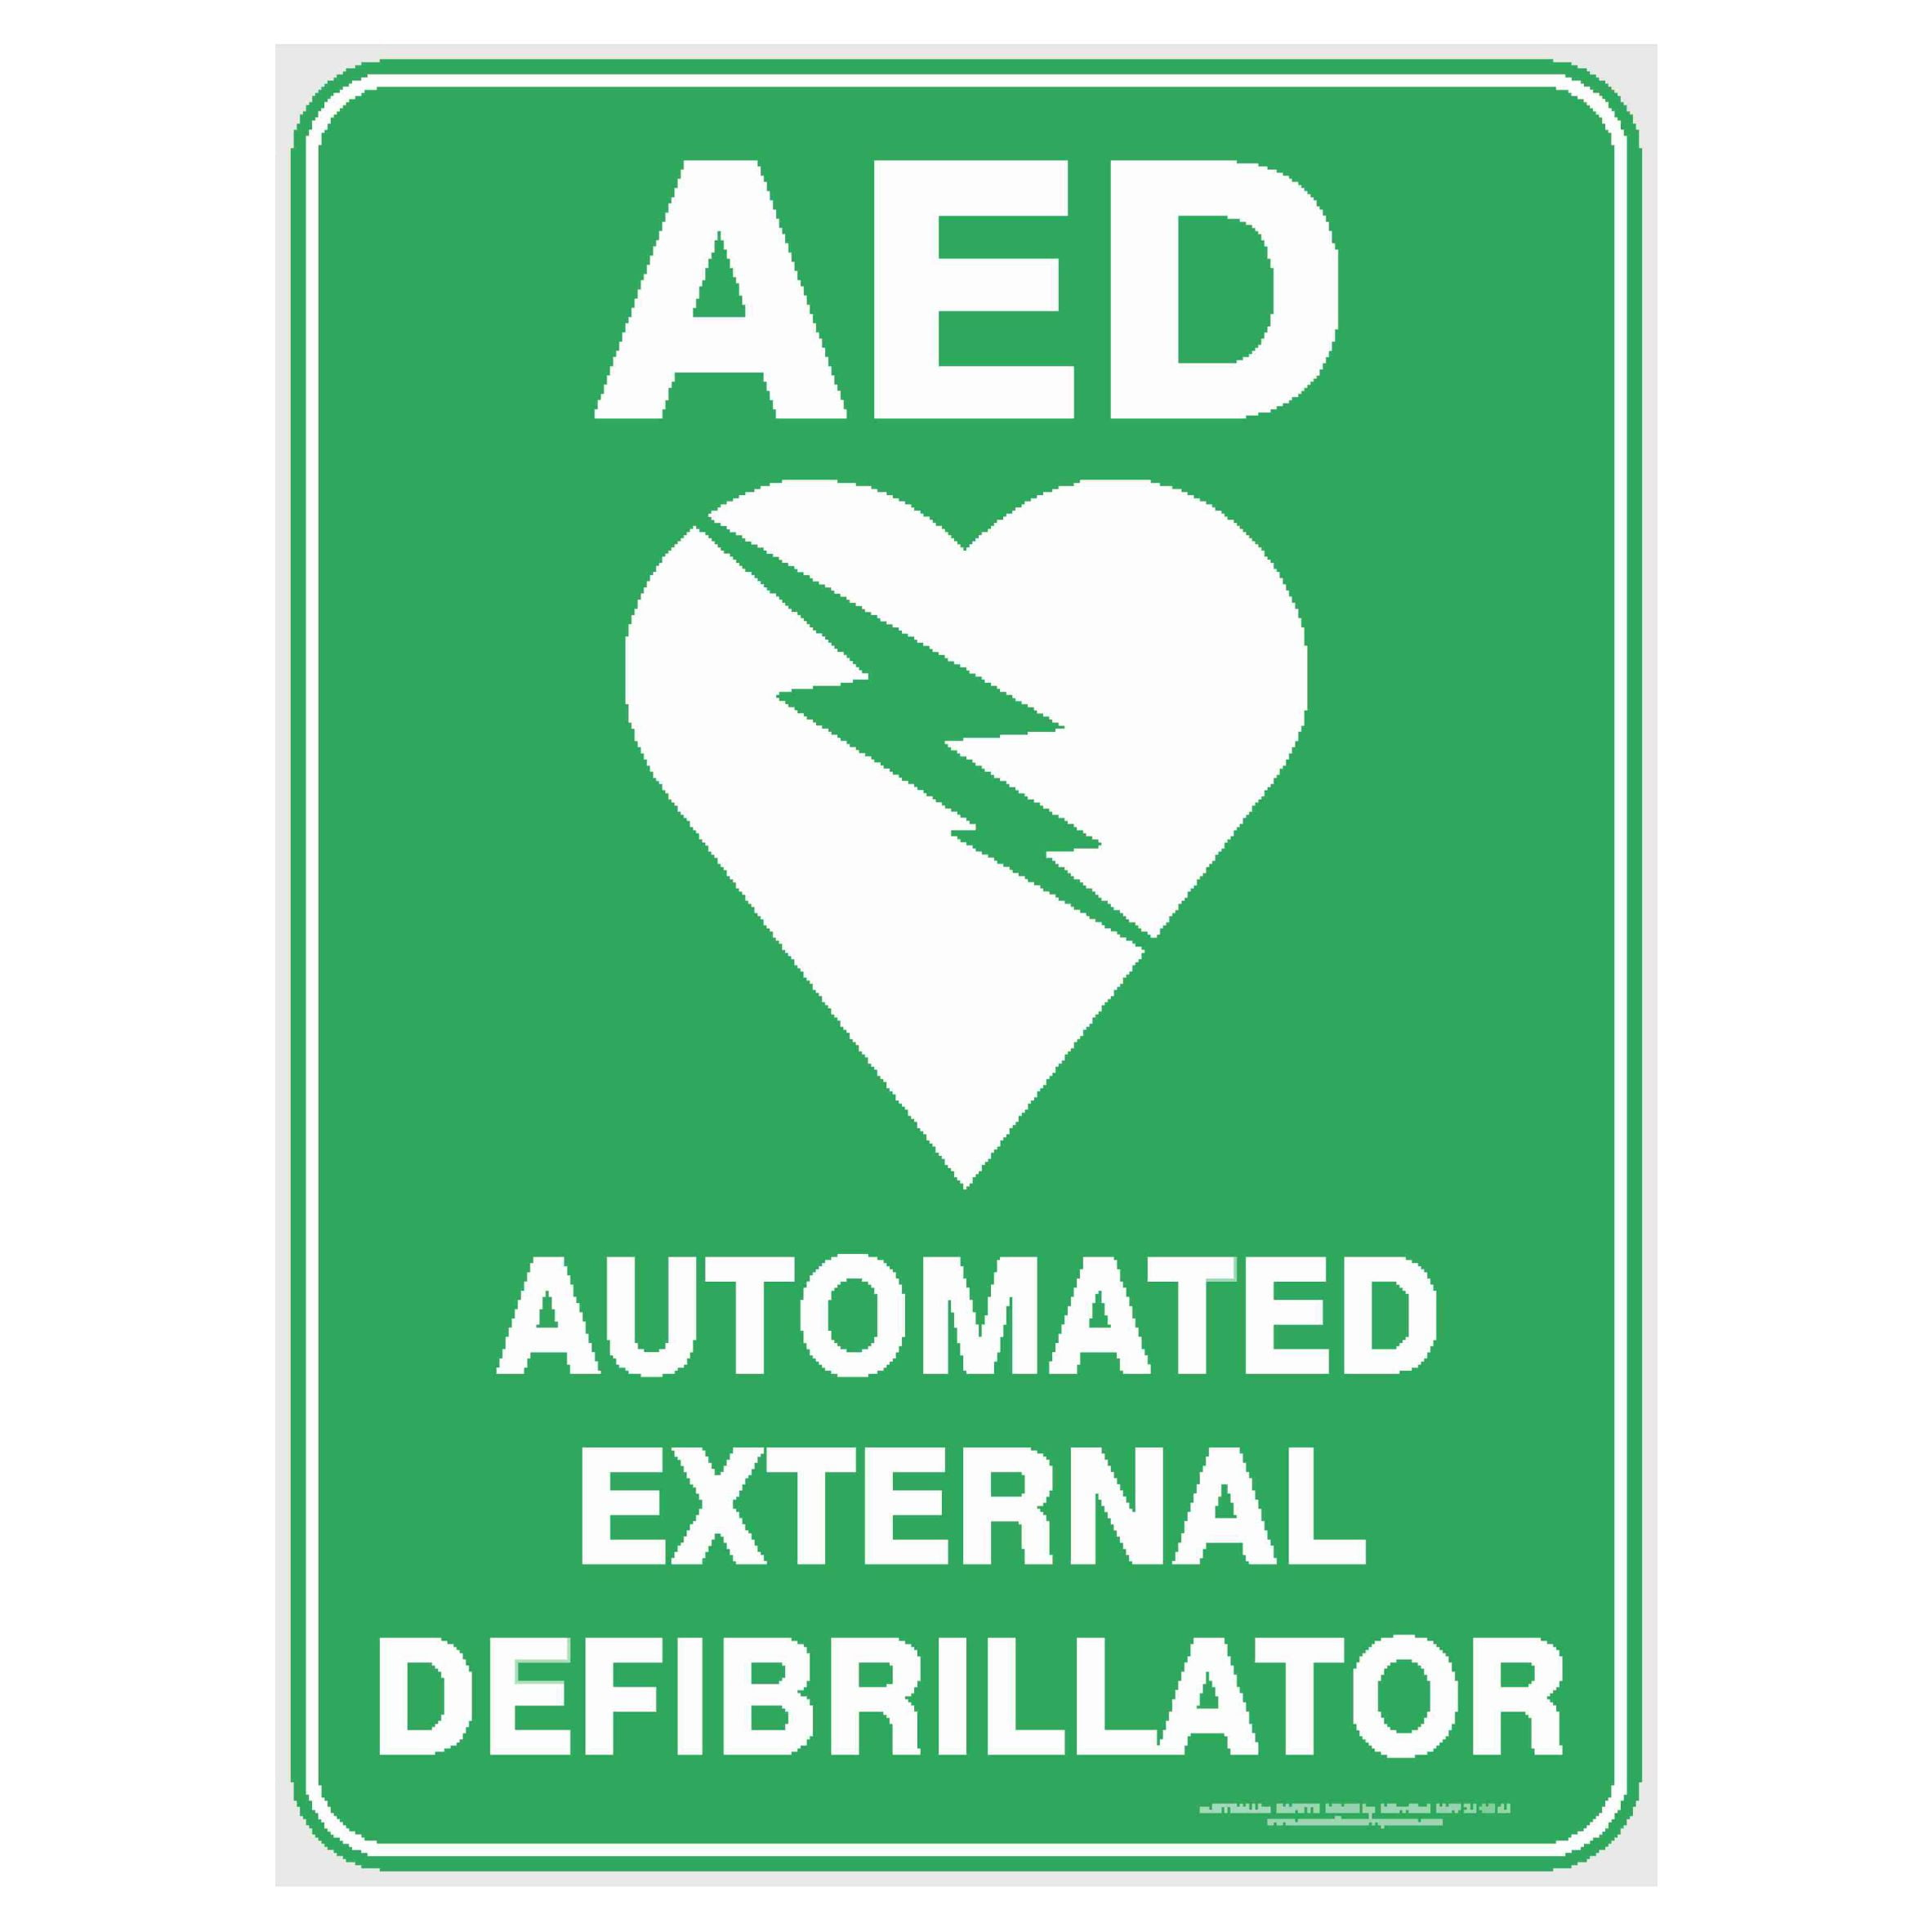 Facility Maintenance Safety Aed Automated External Defibrillator Safety Sign Stickers Business Industrial